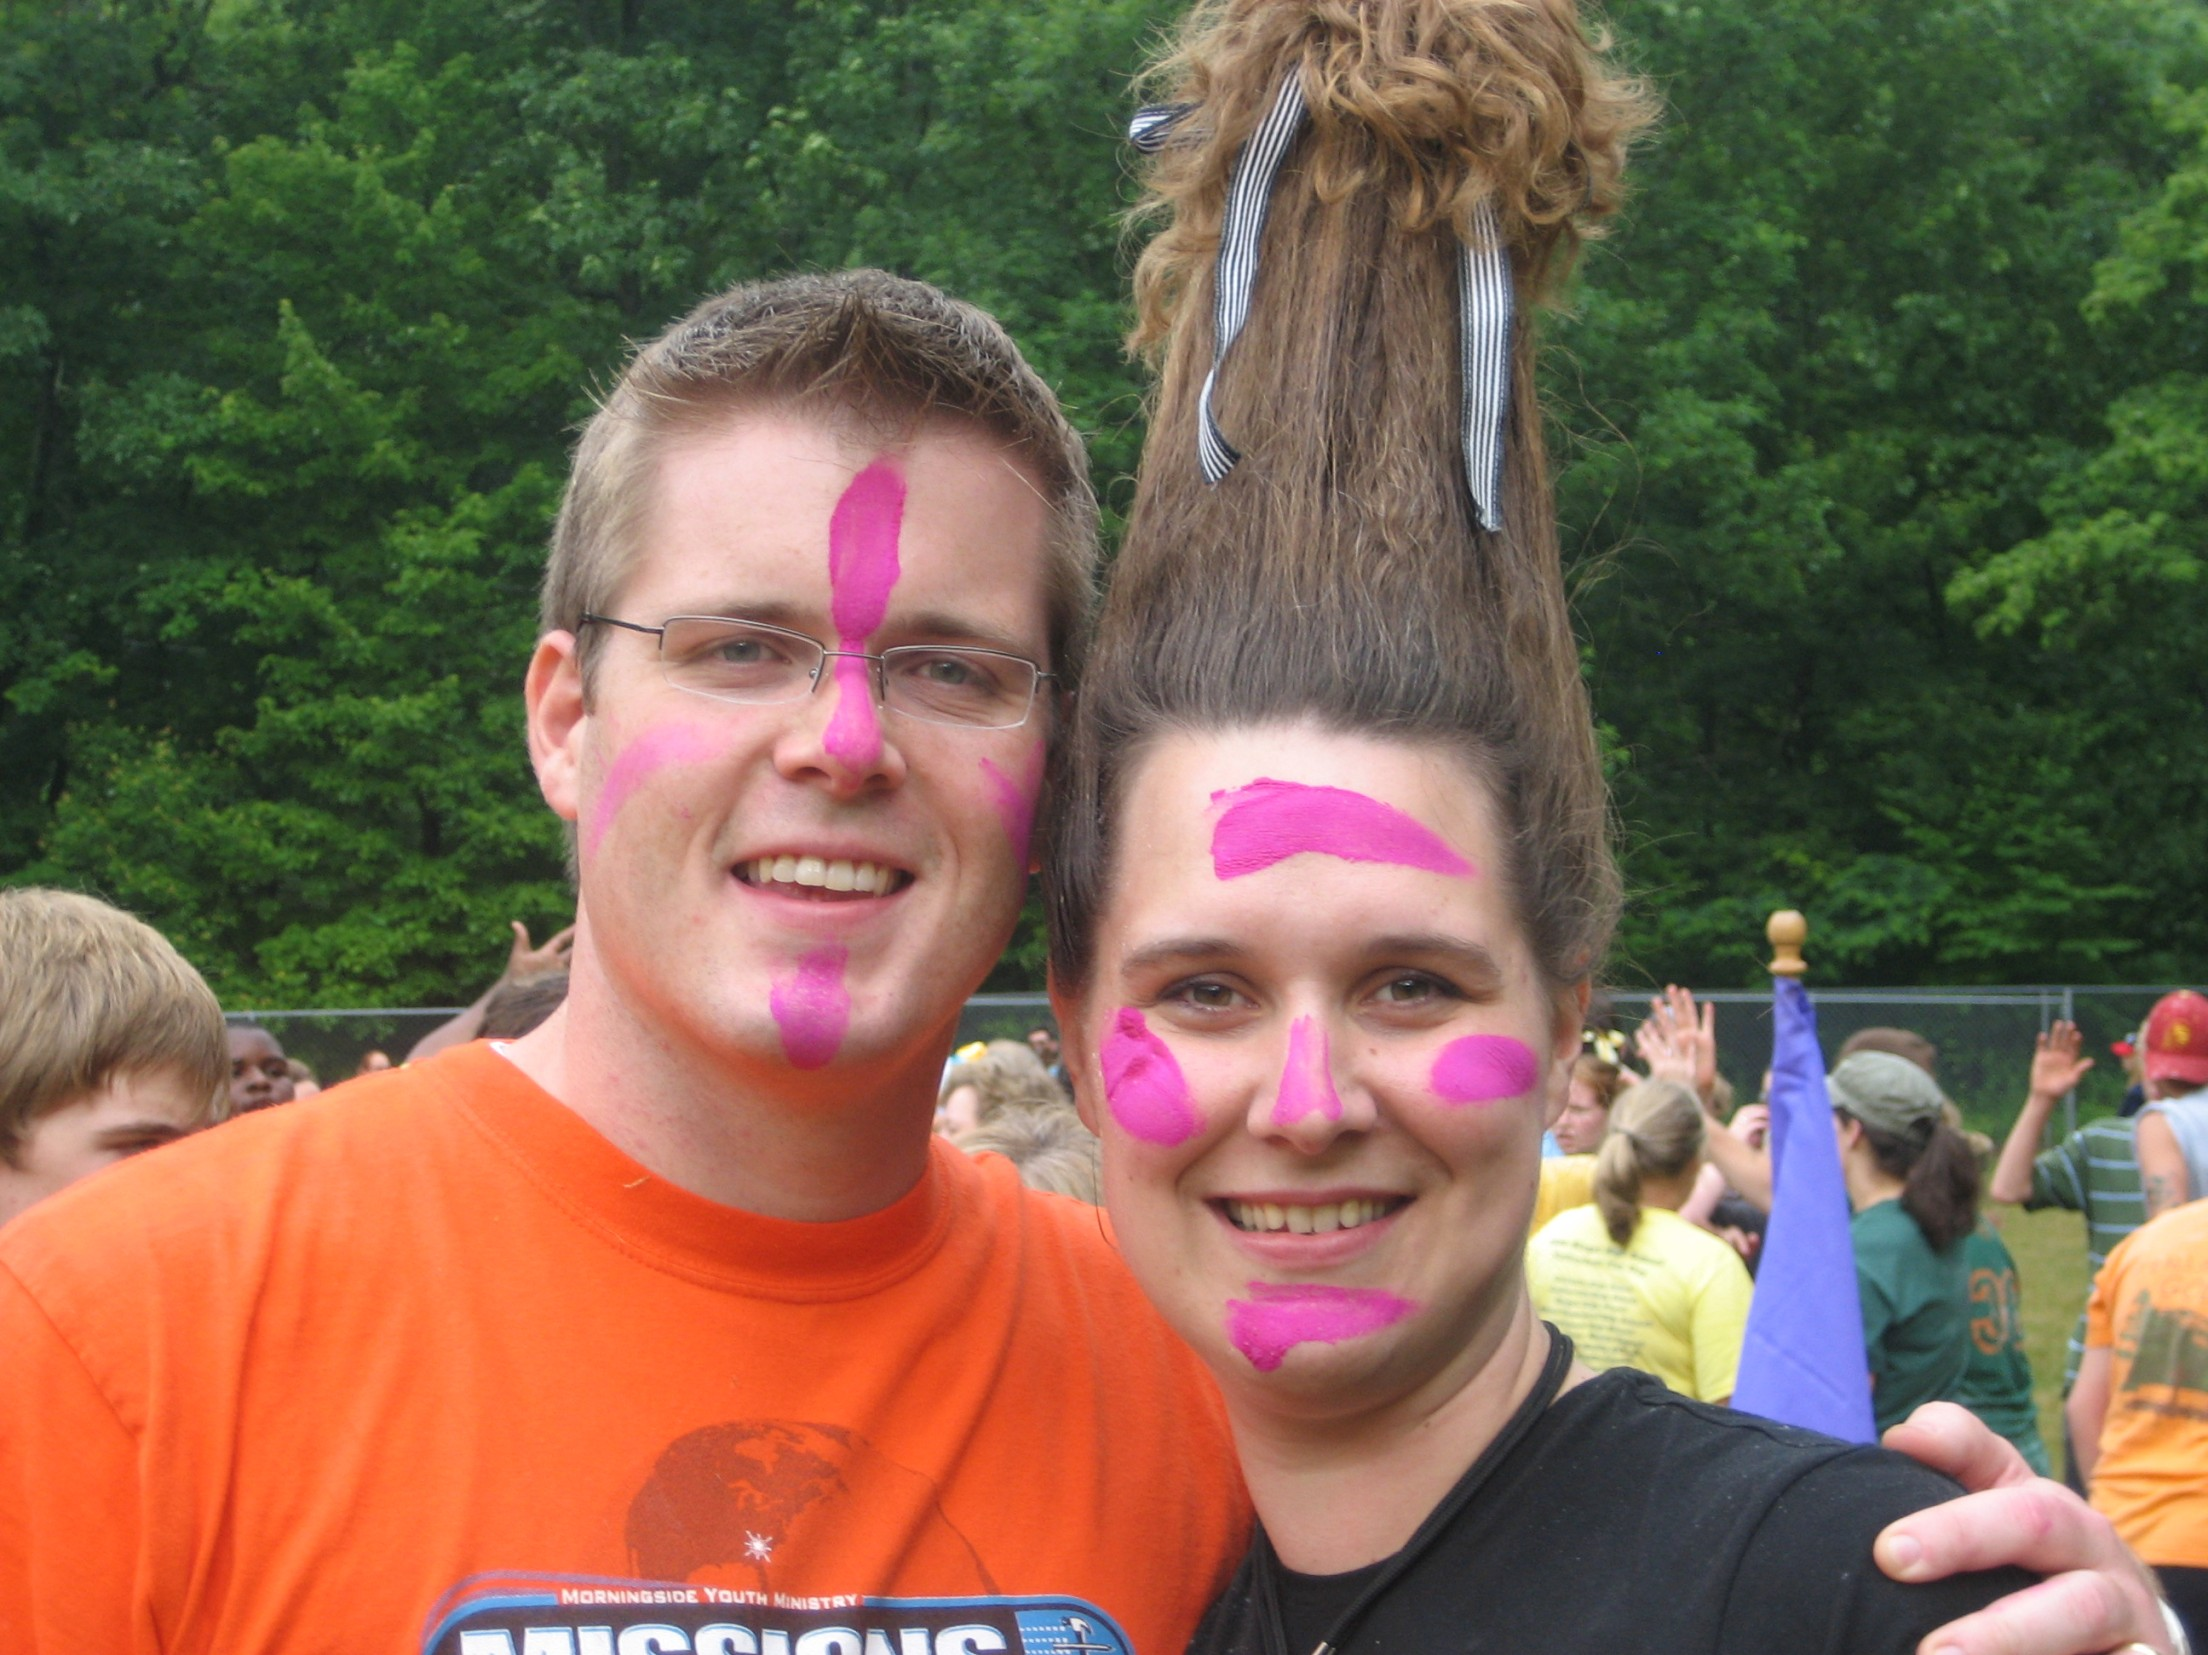 Ashley and Nathan at Fuge '07